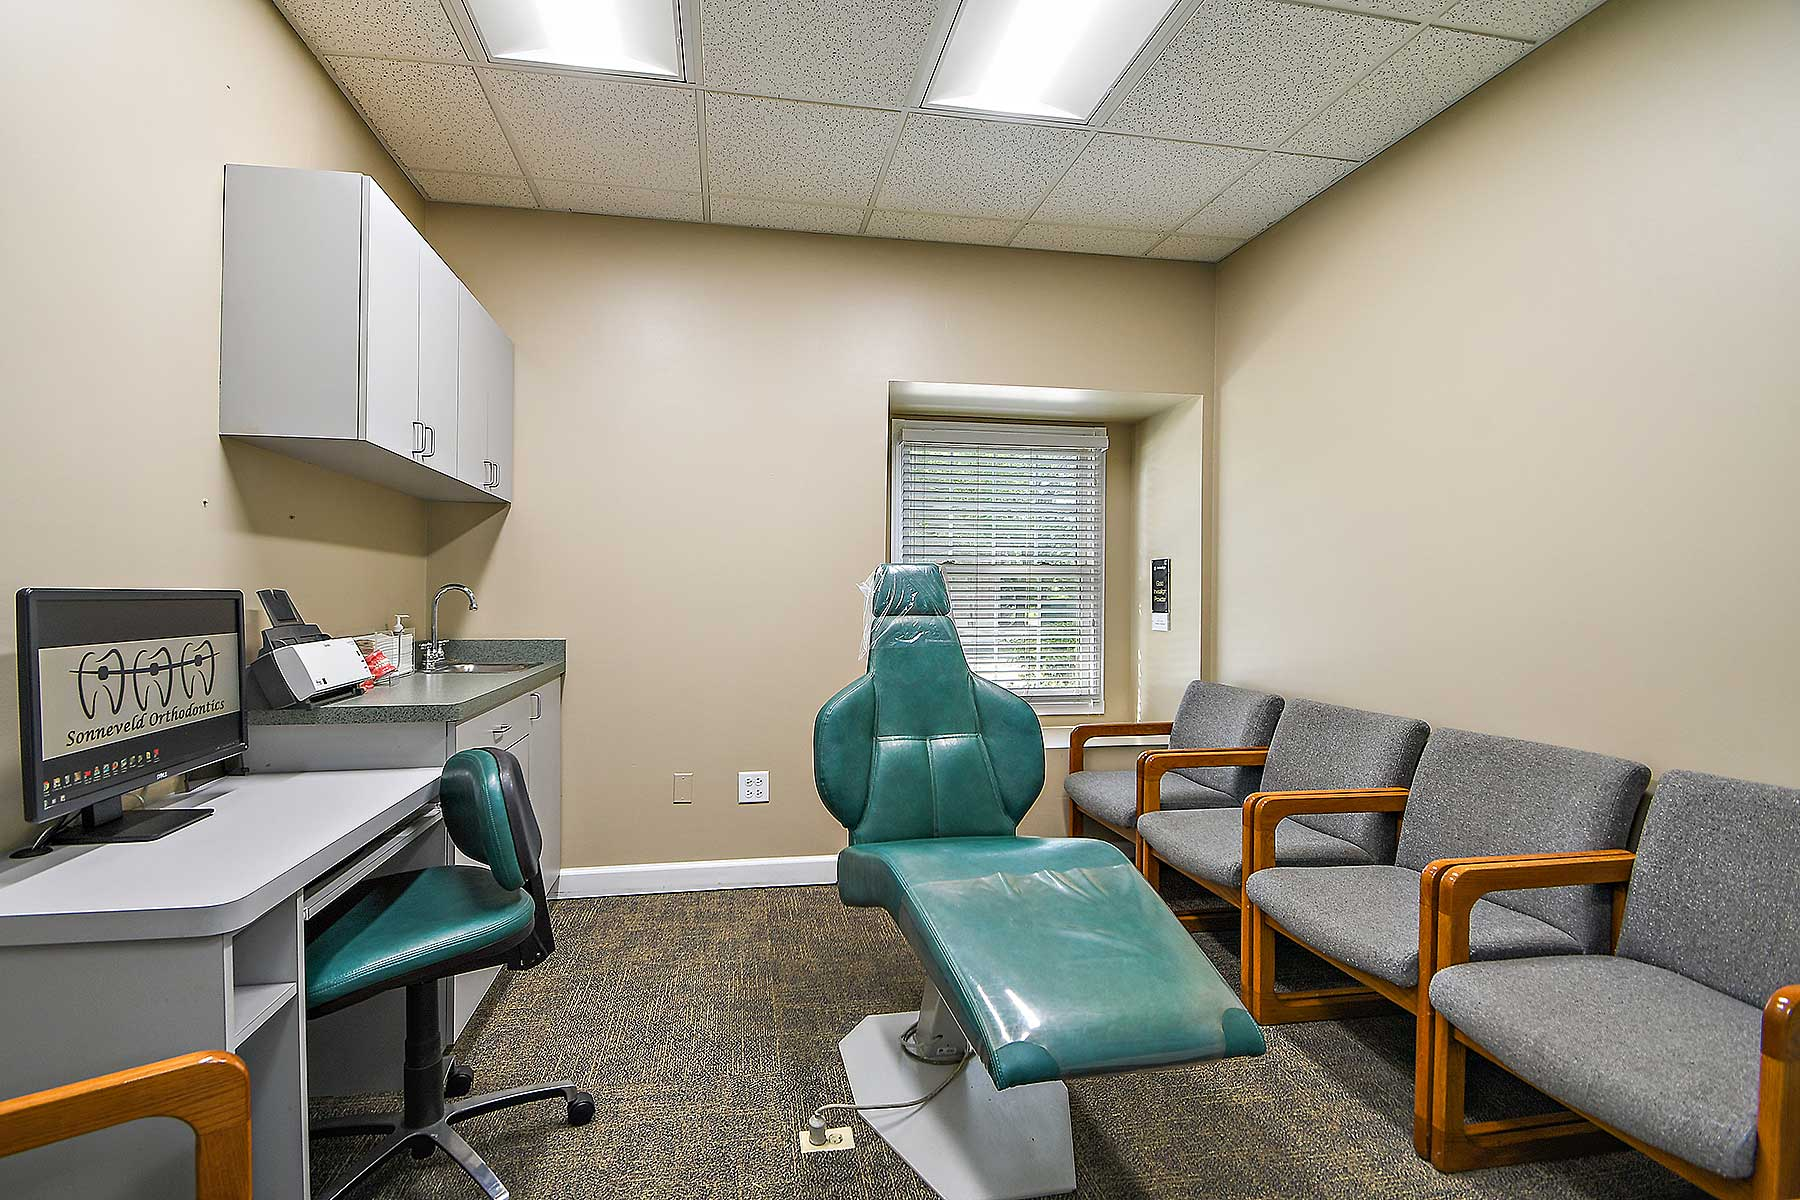 Teal colored orthodontic treatment chair is in the middle of the room, with beige walls and grey chairs along the right wall. A chair is located on the left side of the room at a desk with a computer that has the Sonneveld Orthodontics logo displayed.